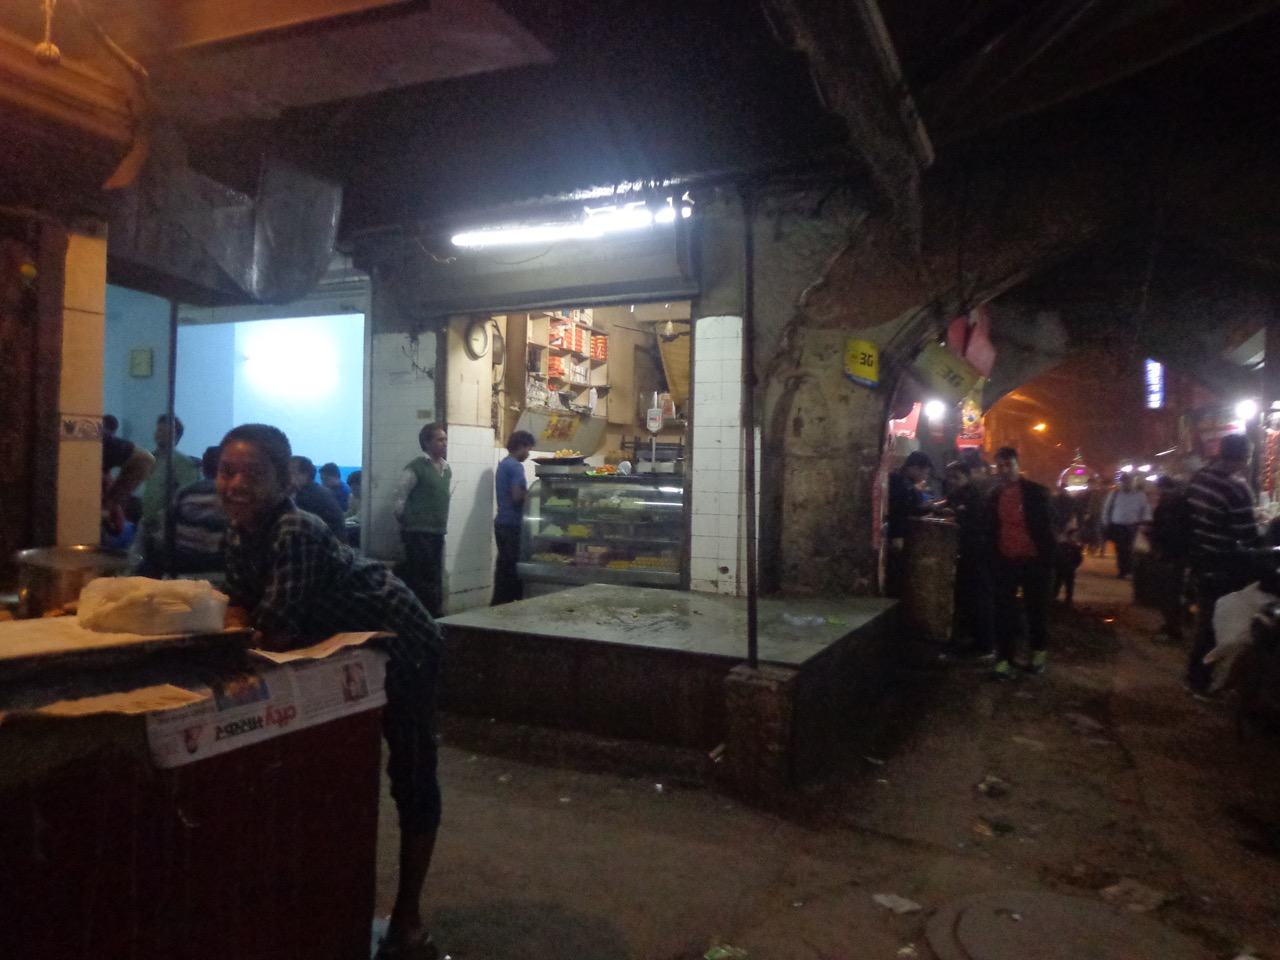 The shop making roti owns the area opposite to it. That's the seating place.